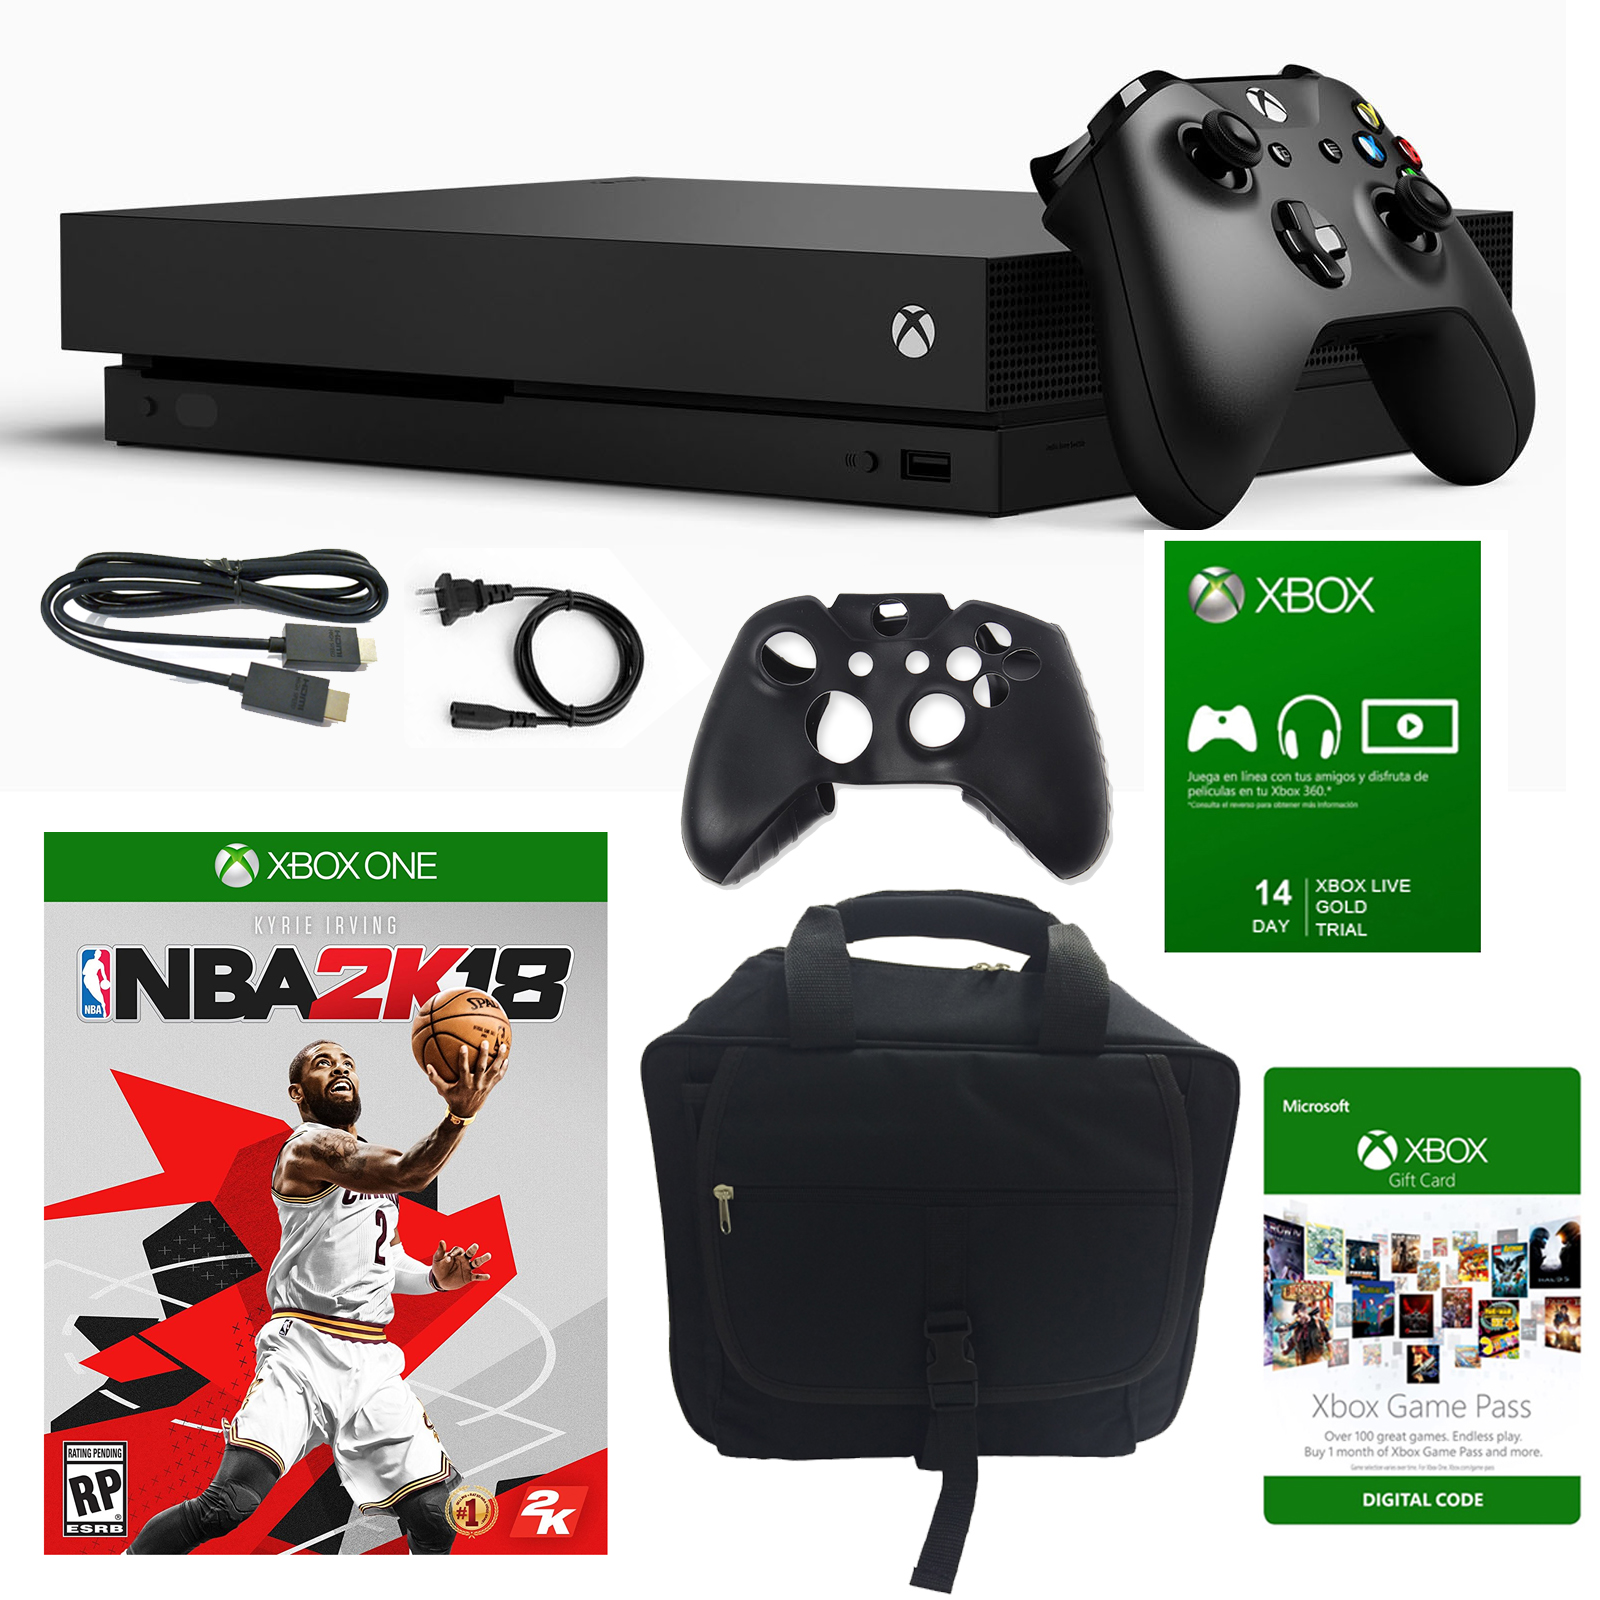 Xbox One X 1TB Console with NBA 2K 18 and Accessories by Xbox